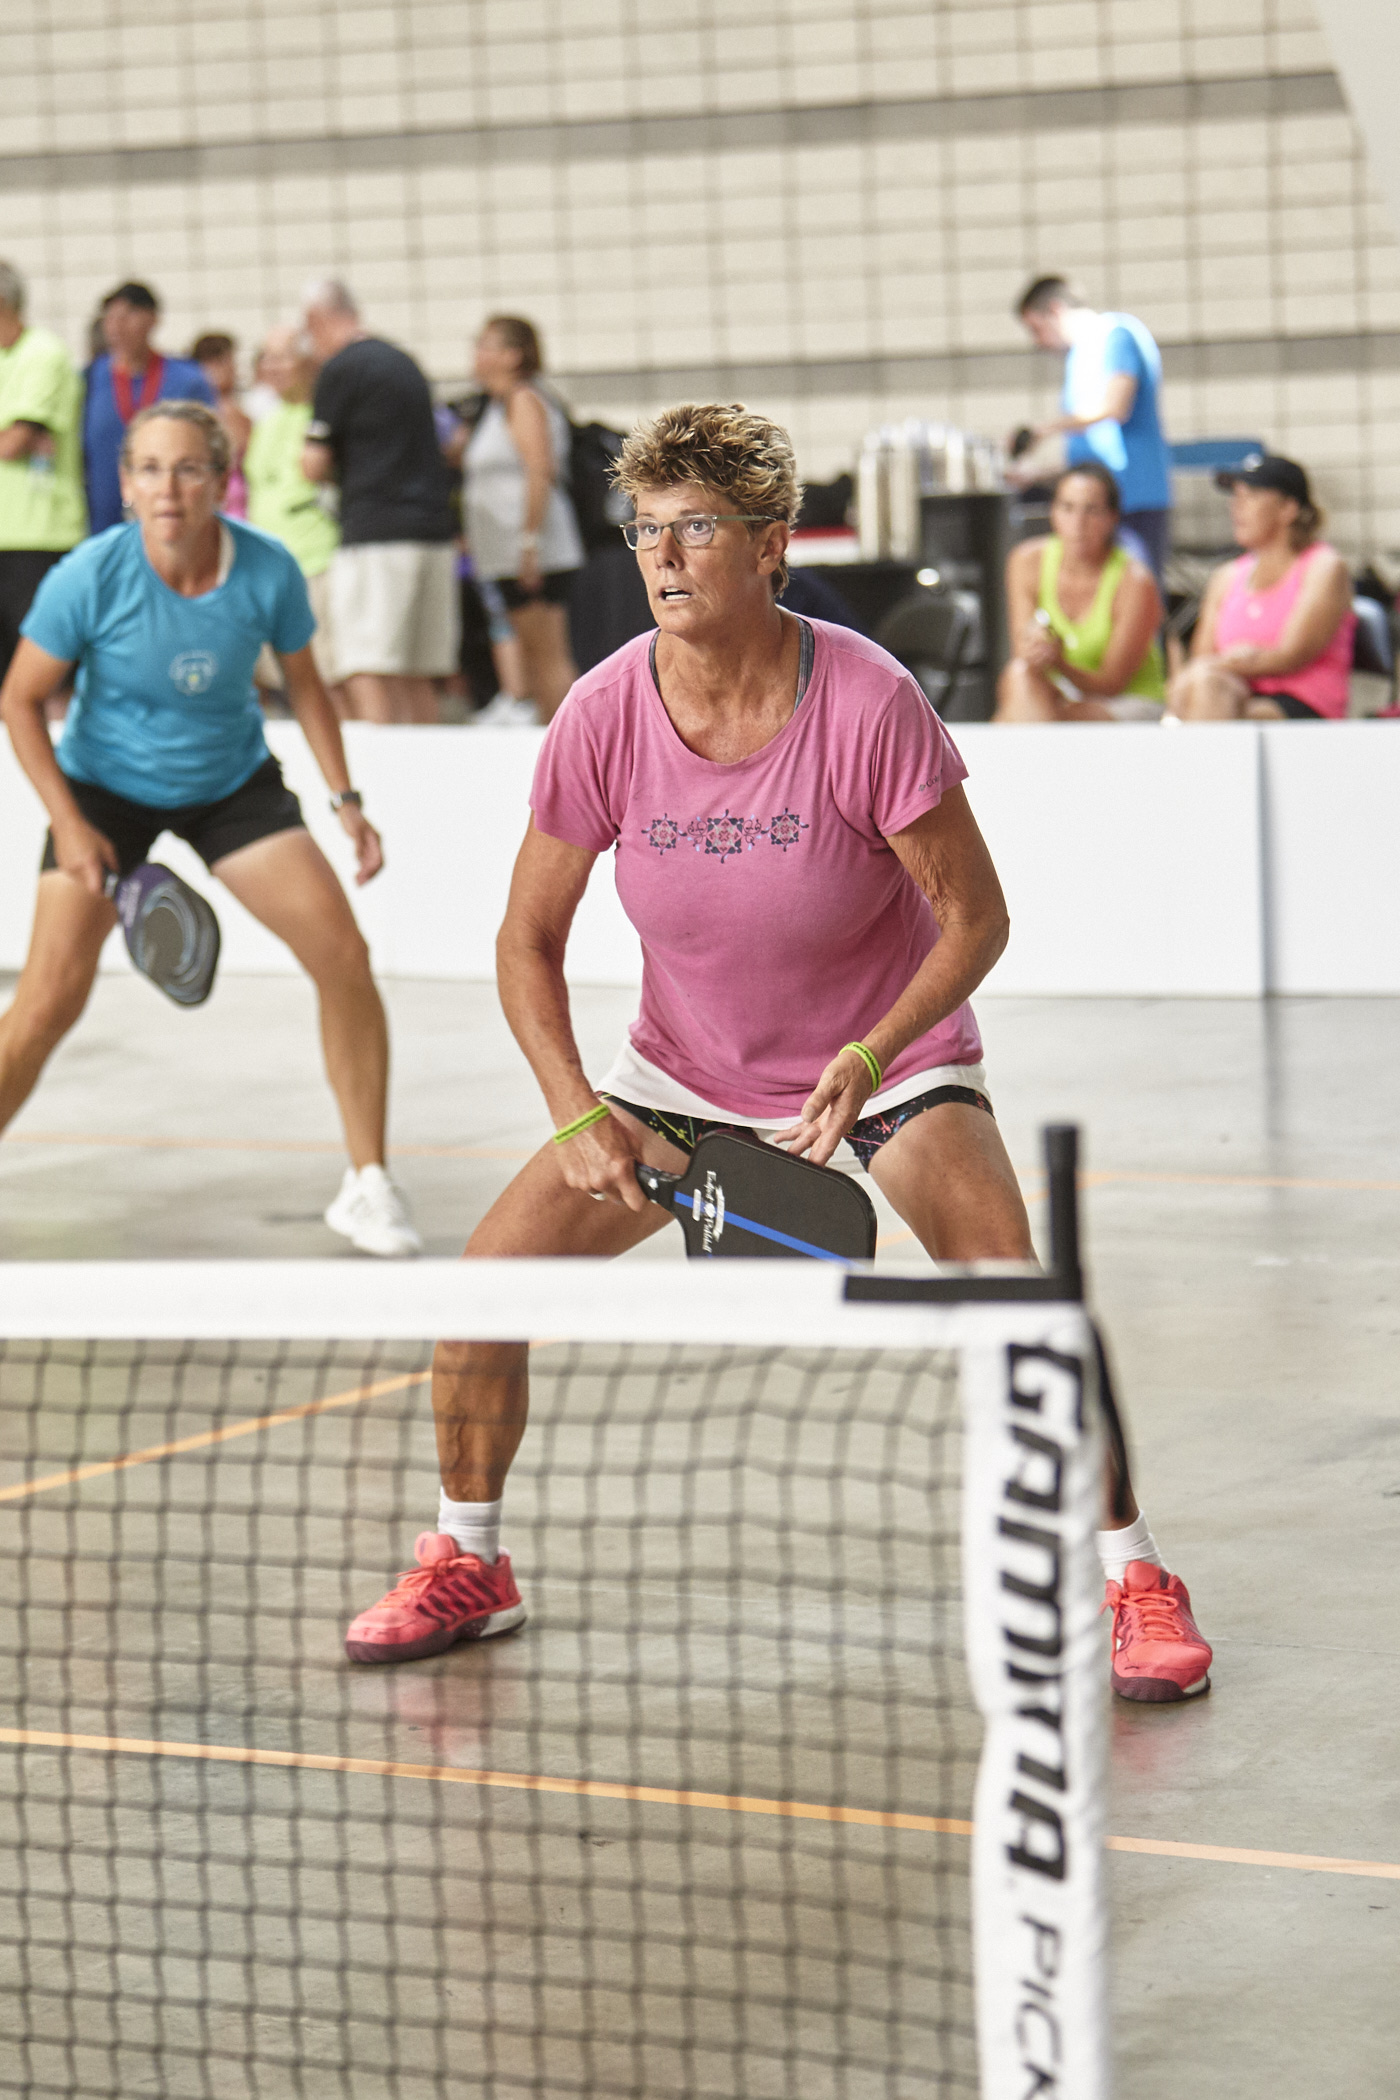 Jamie Whiting wins Silver - Jamie Whiting and Lynne Coburn won silver this weekend in the GAMMA PICKLEBALL CLASSIC in Pittsburgh, PA.